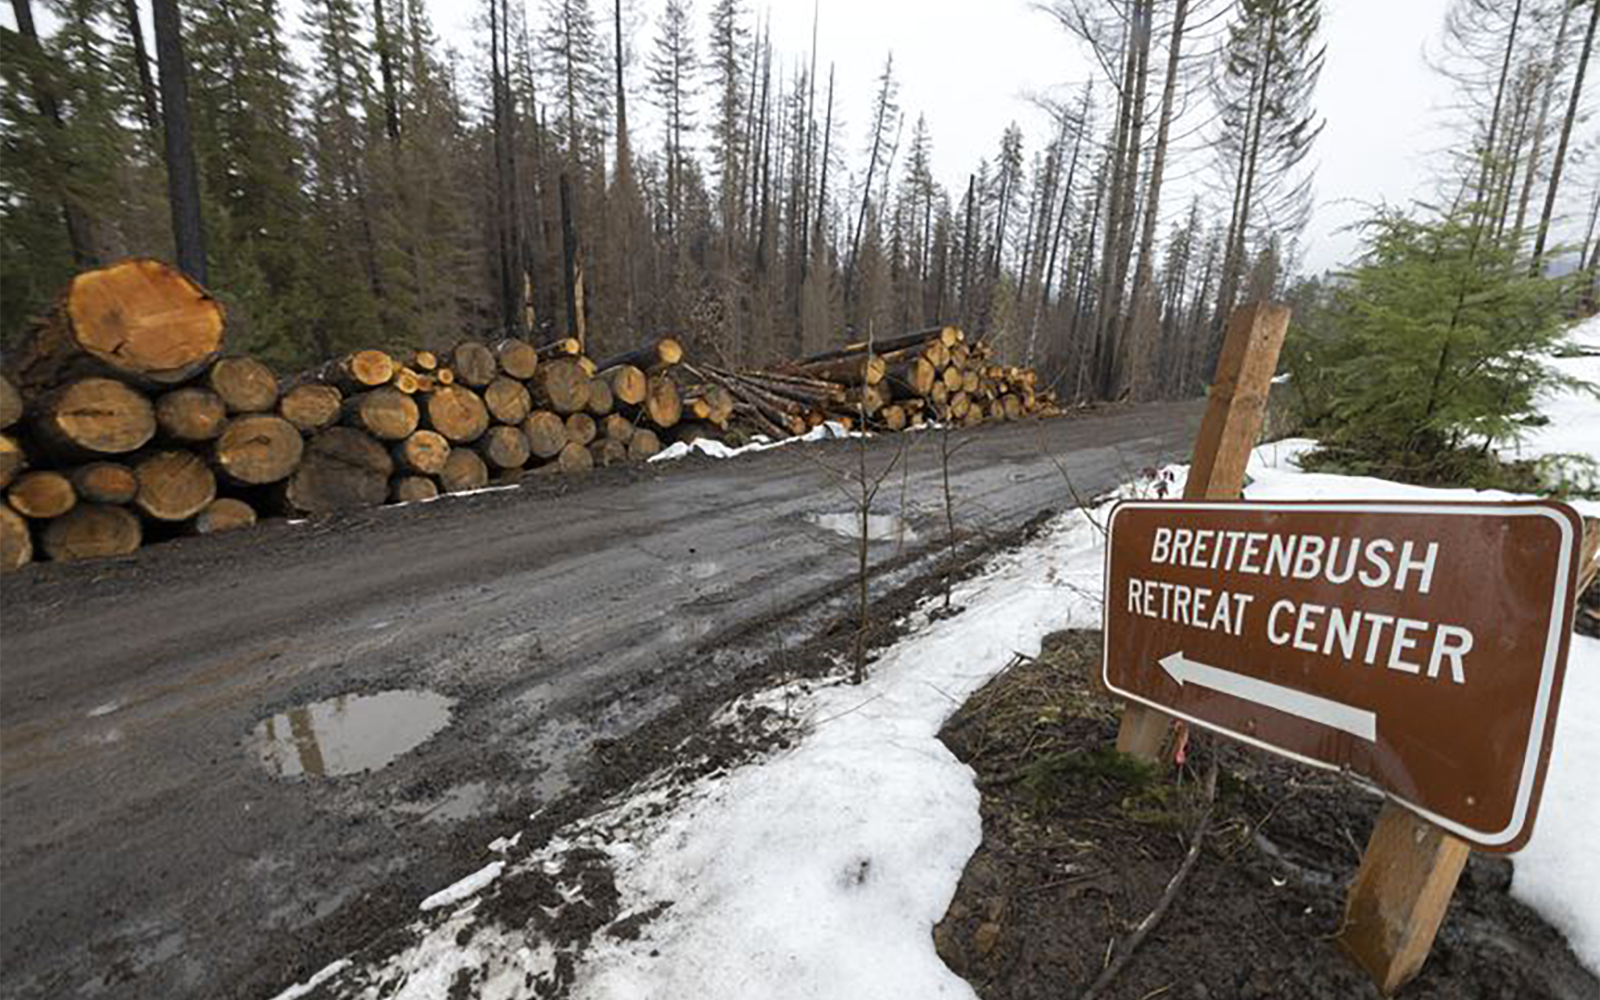 Post-wildfire logging is moving fast, raising environmental concerns